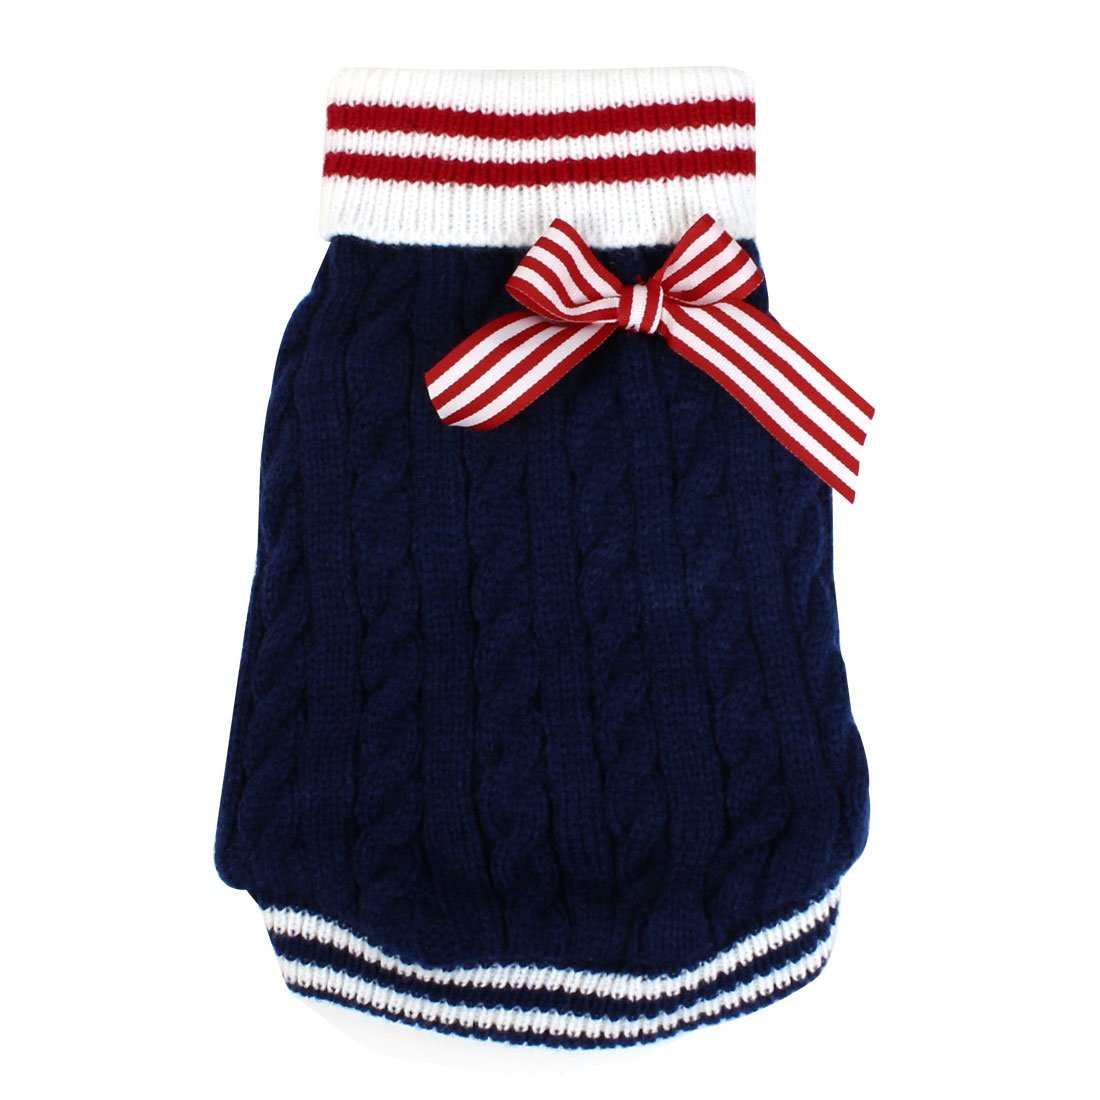 Bowknot Decor Ribbed Cuff Twisted Knitwear Pet Dog Puppy Turtleneck Apparel Sweater Size M bluee